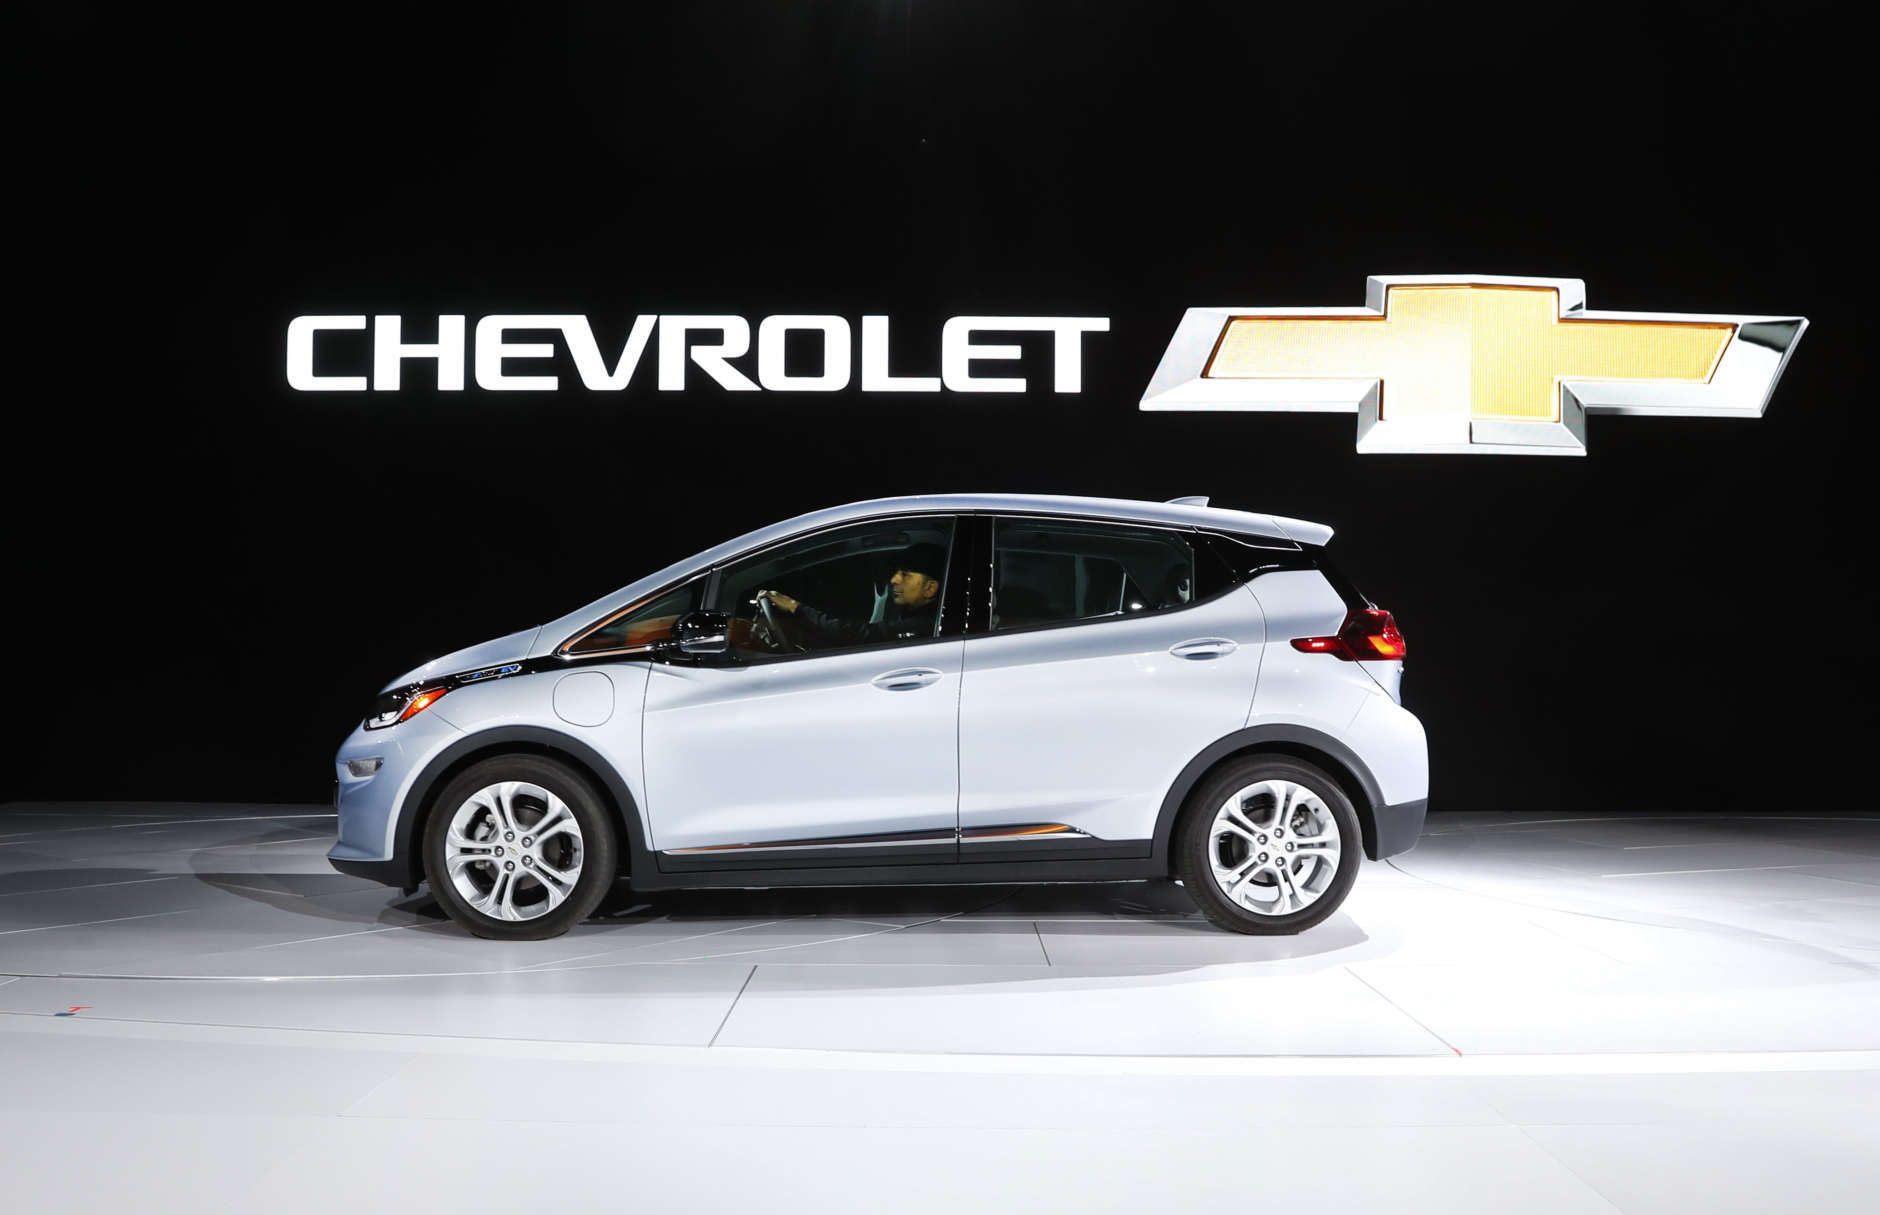 The Chevrolet Bolt, winner of the North American Car of the Year award, is on display at the North American International Auto Show in Detroit, Monday, Jan. 9, 2017. (AP Photo/Paul Sancya)